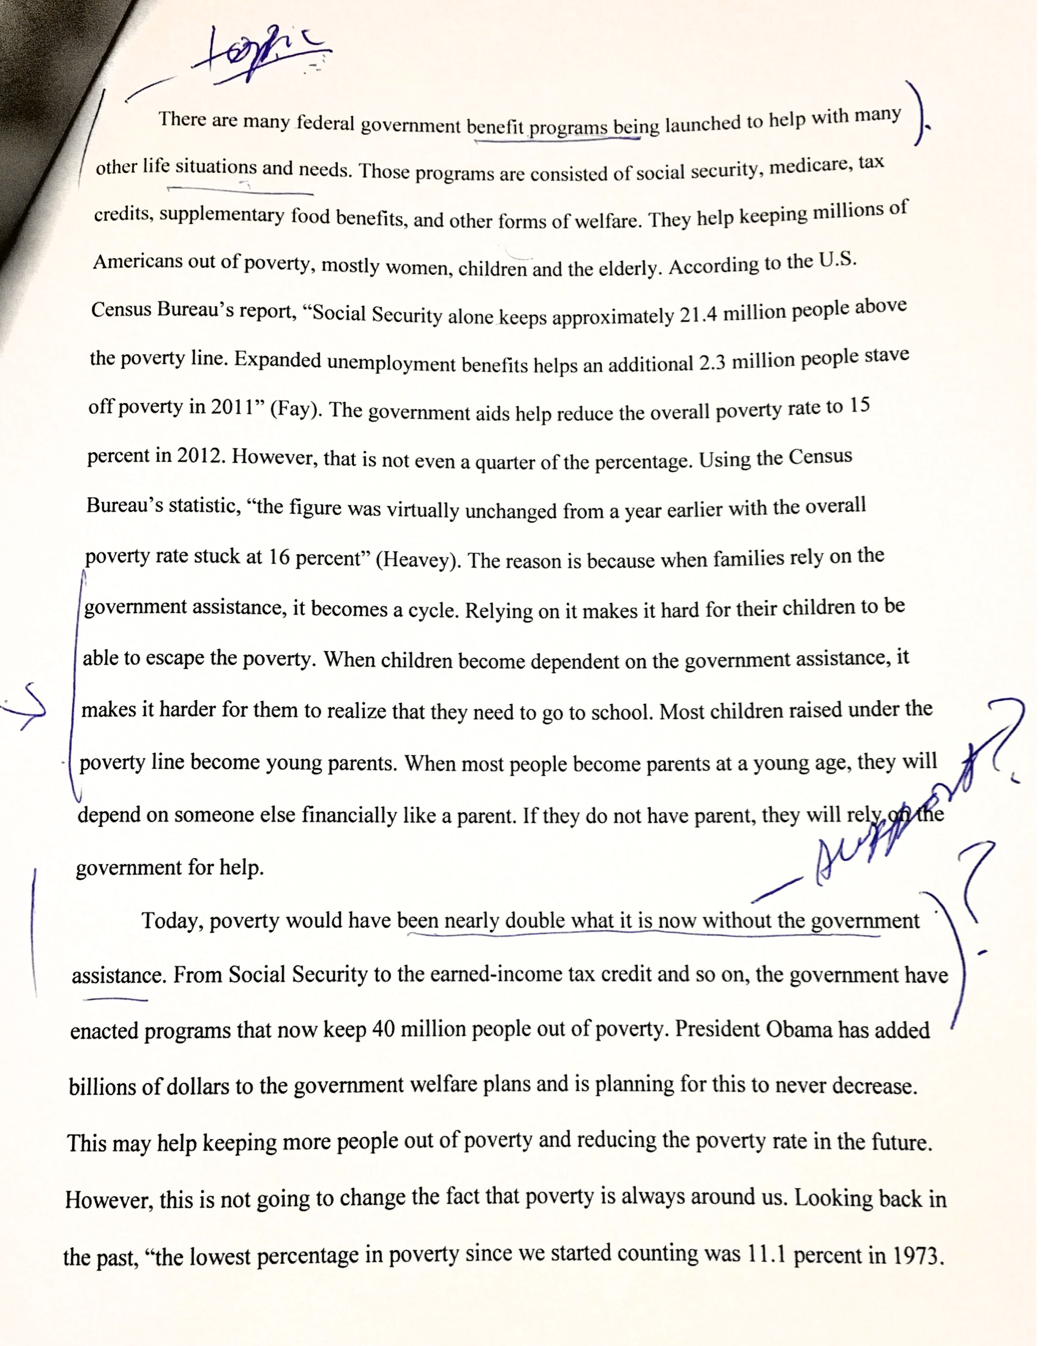 can someone please help me rewrite or fix those mistakes on my   please help me rewrite or fix those mistakes on my argumentative paper  attached below also please help me come up with a better claim or thesis